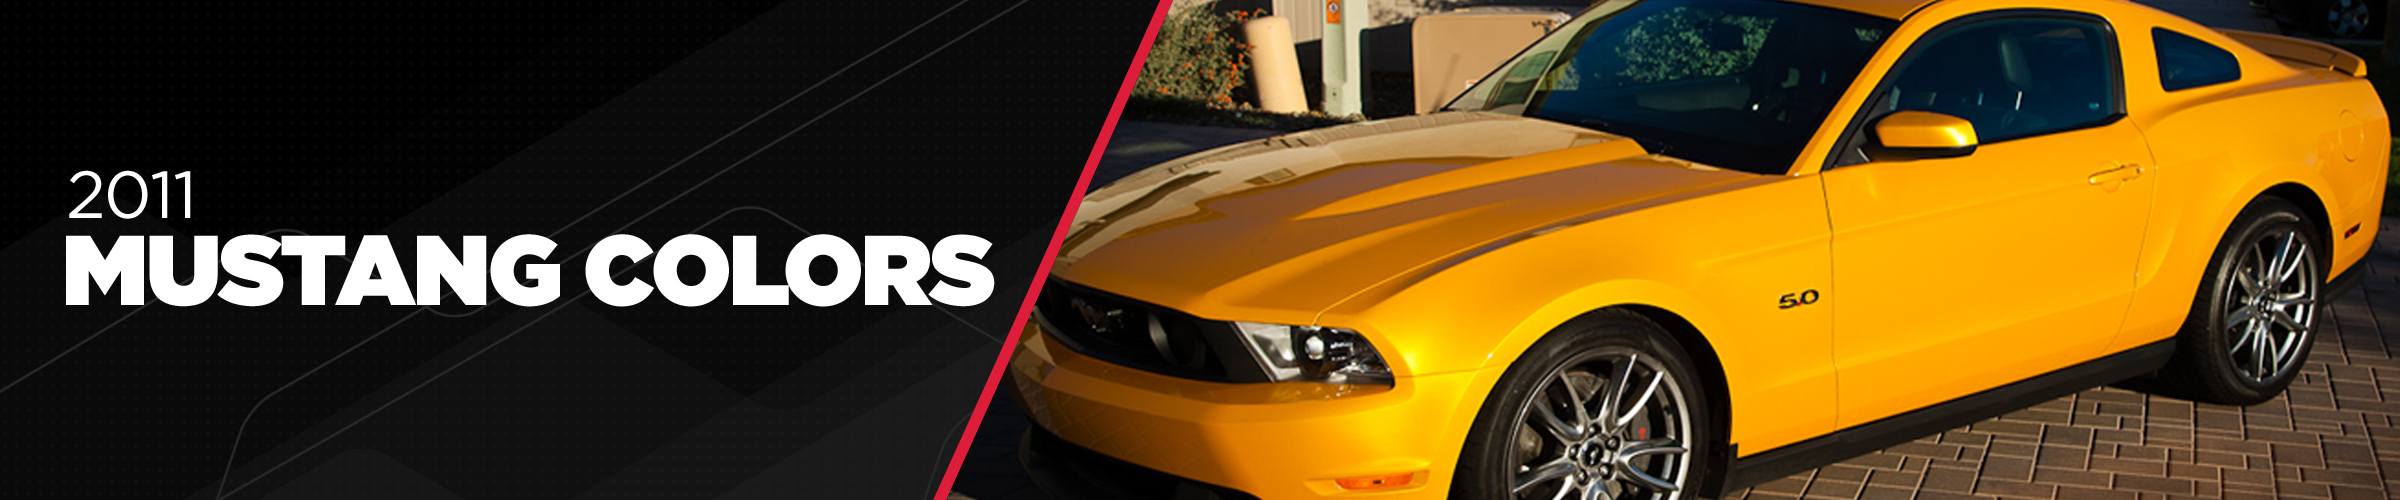 2011 Mustang Colors - Options, Photos, & Color Codes